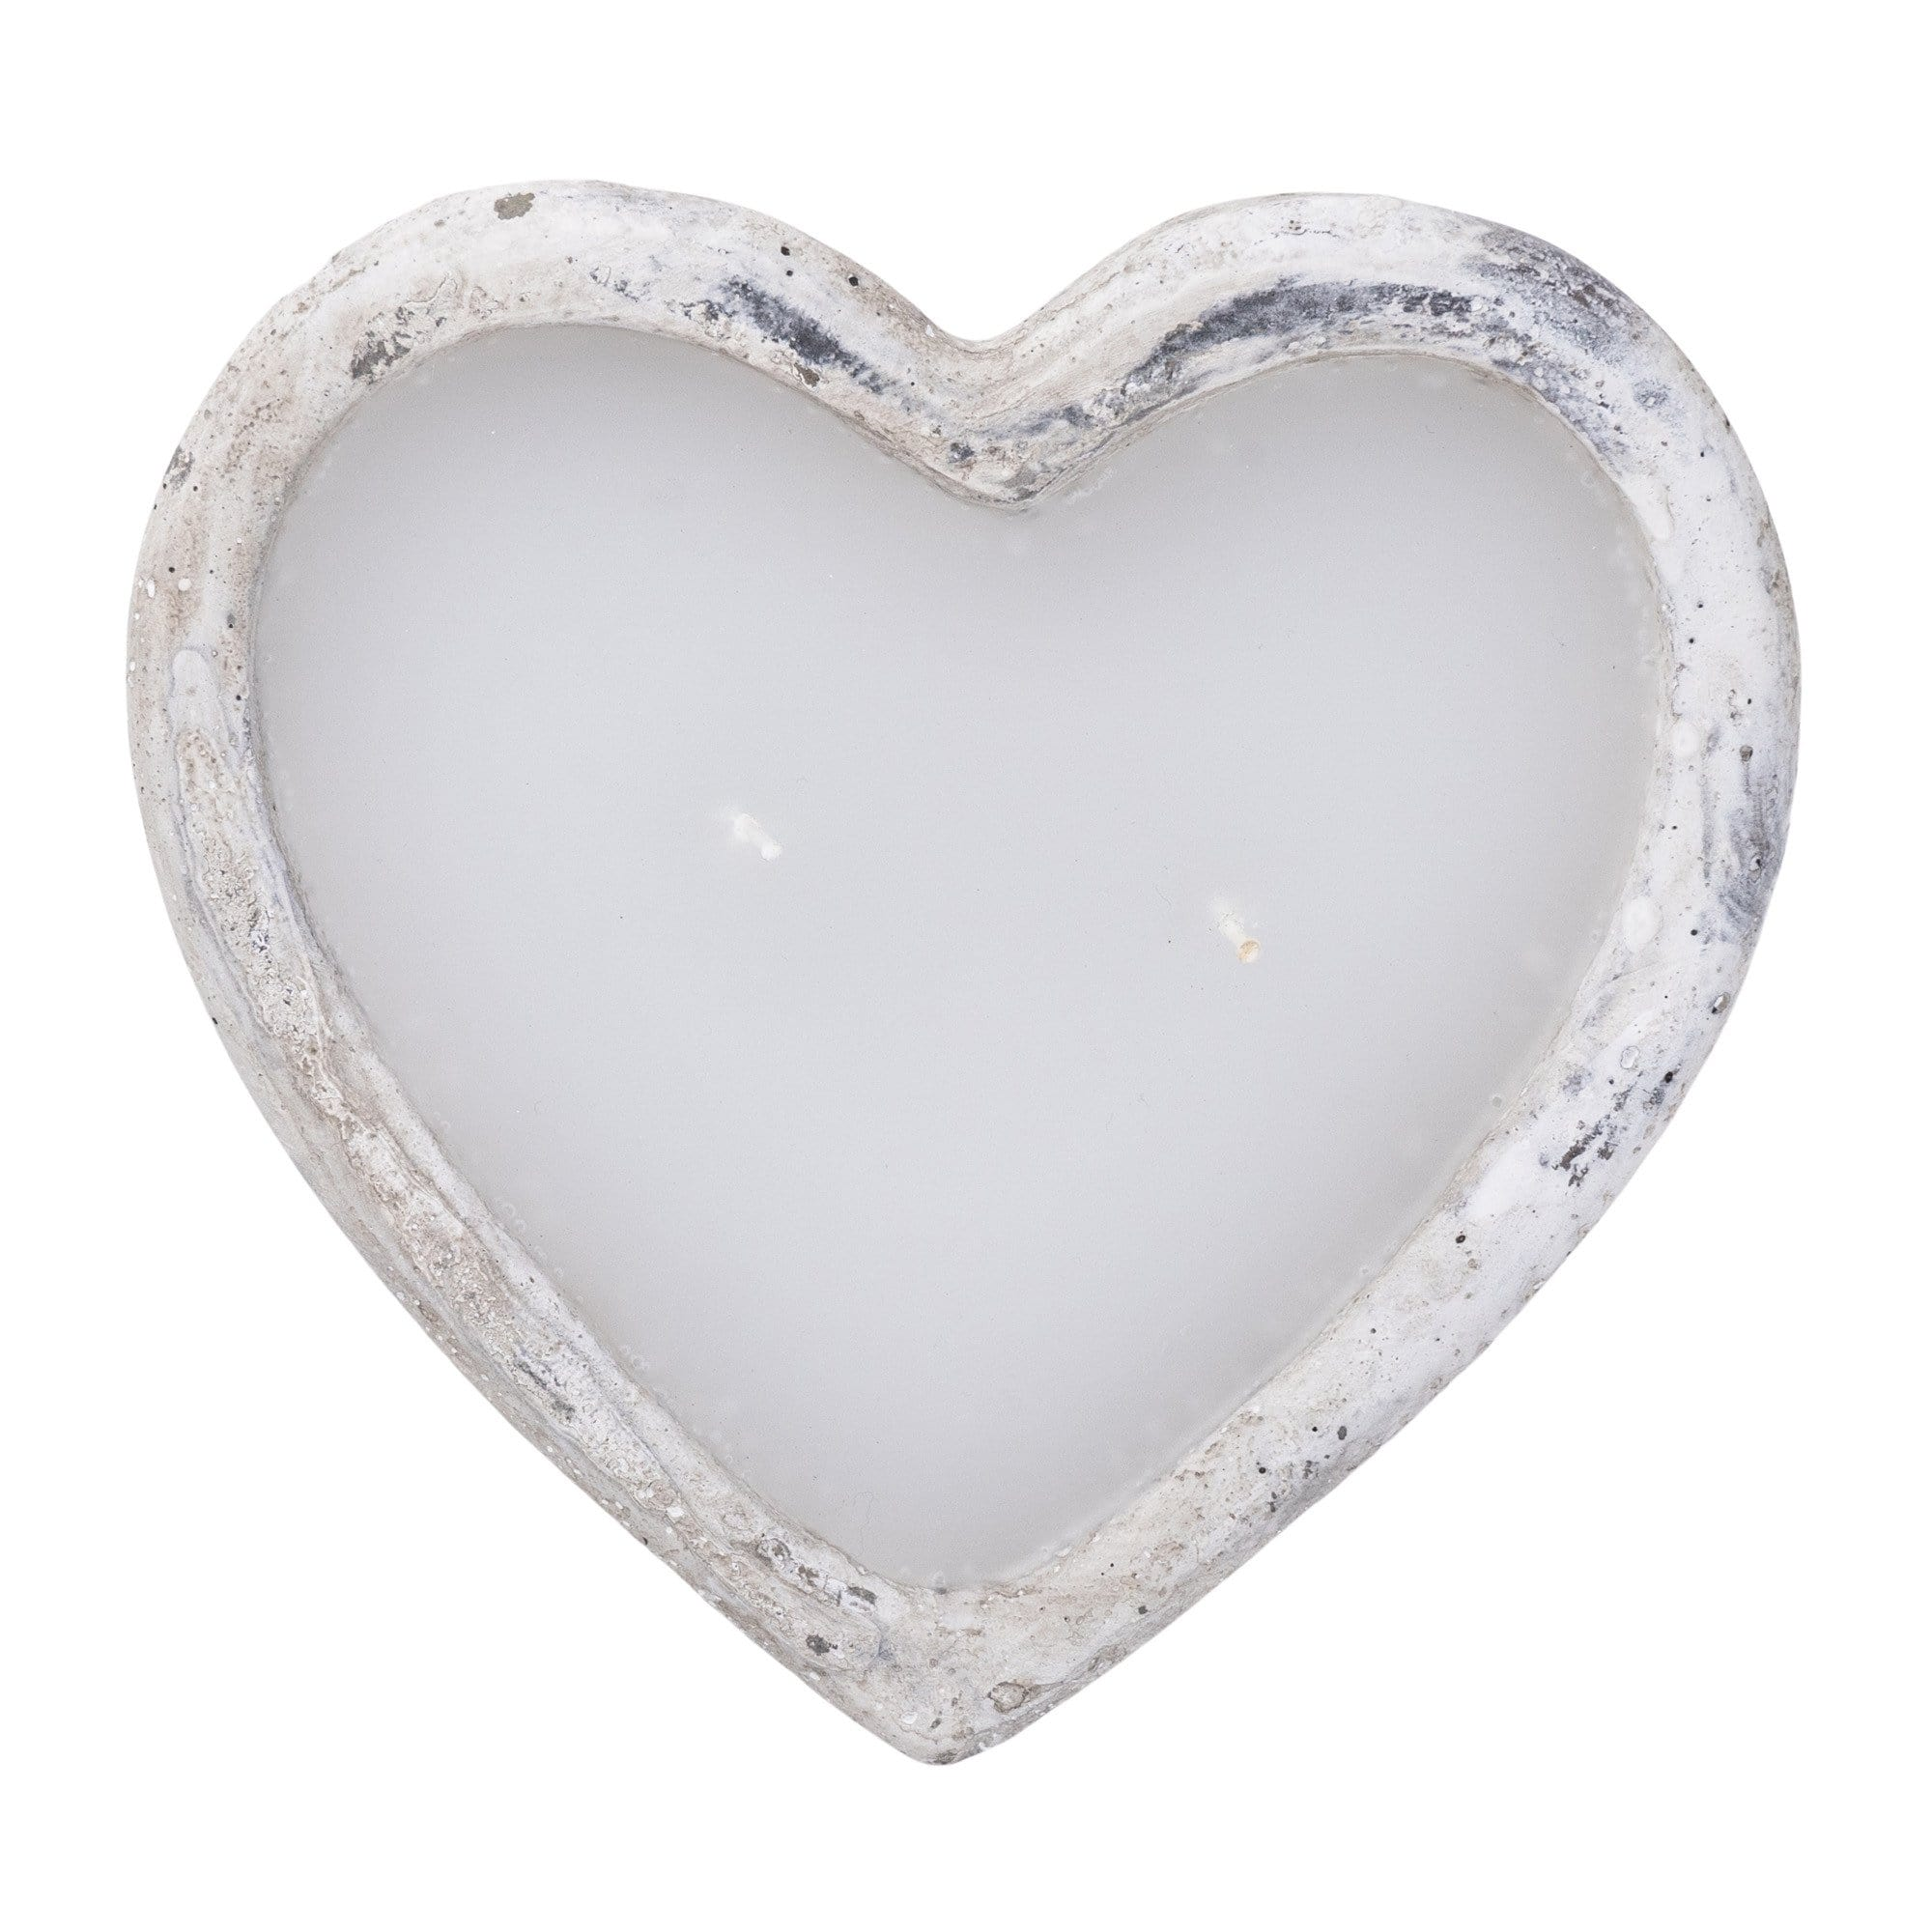 Cement Heart Shaped Wax Filled Bowl Grey/White 16.4cm 4PK